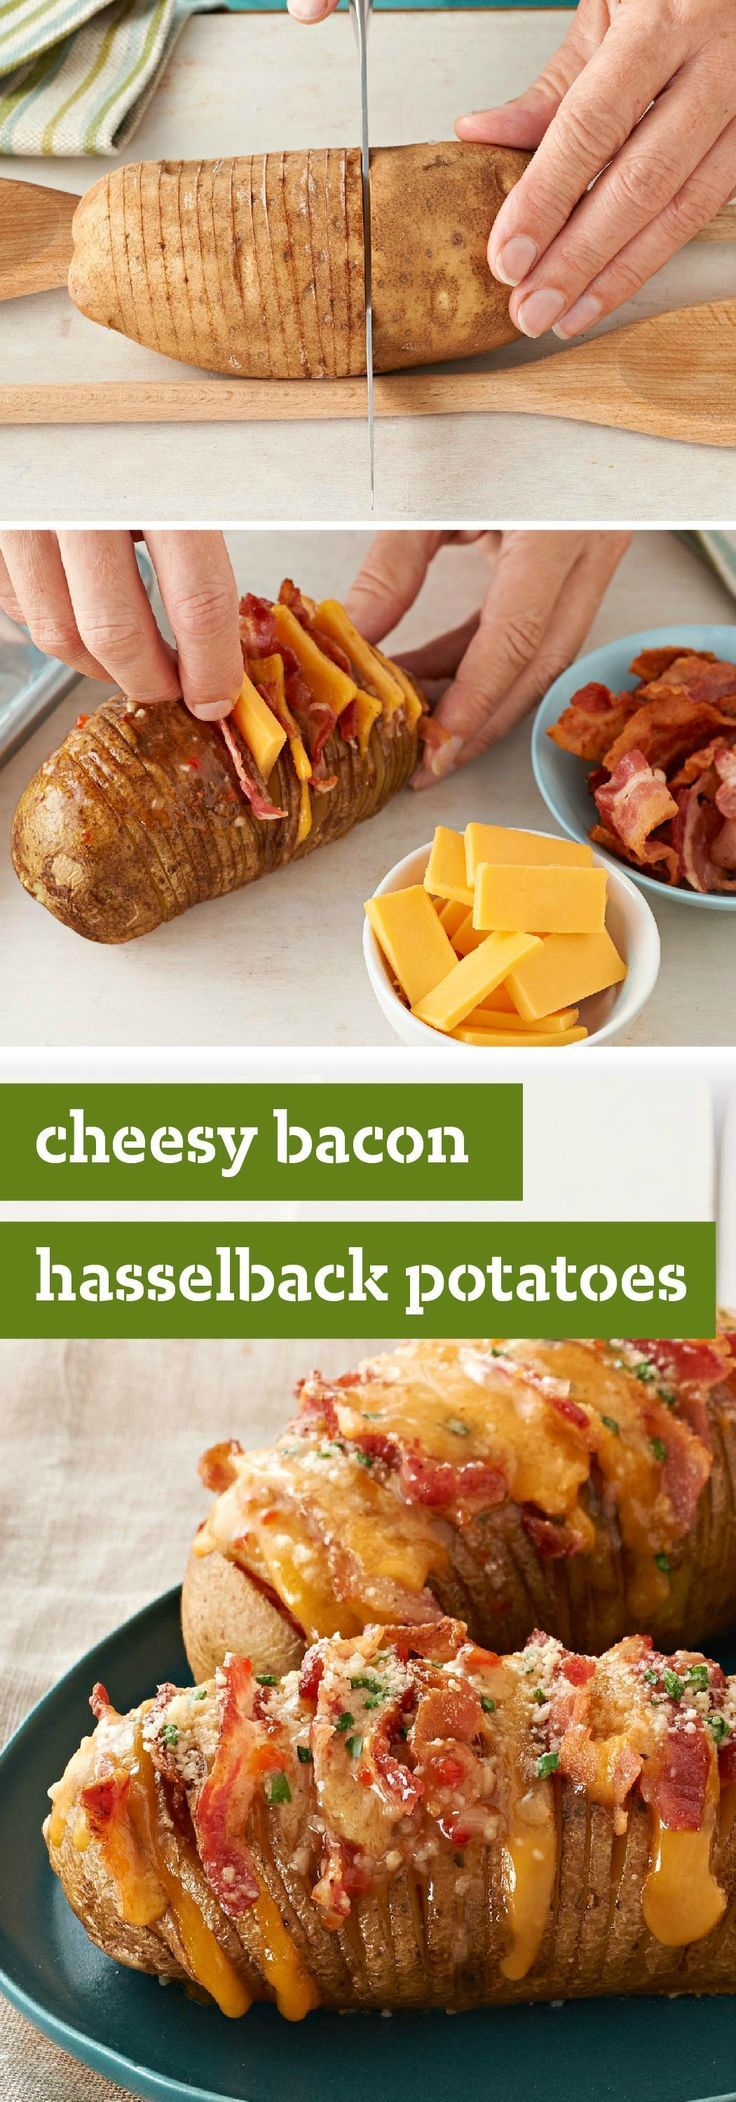 Cheesy Bacon Hasselback Potatoes – Hasselback potatoes always look great on a dinner plate. This cheesy version, made with OSCAR